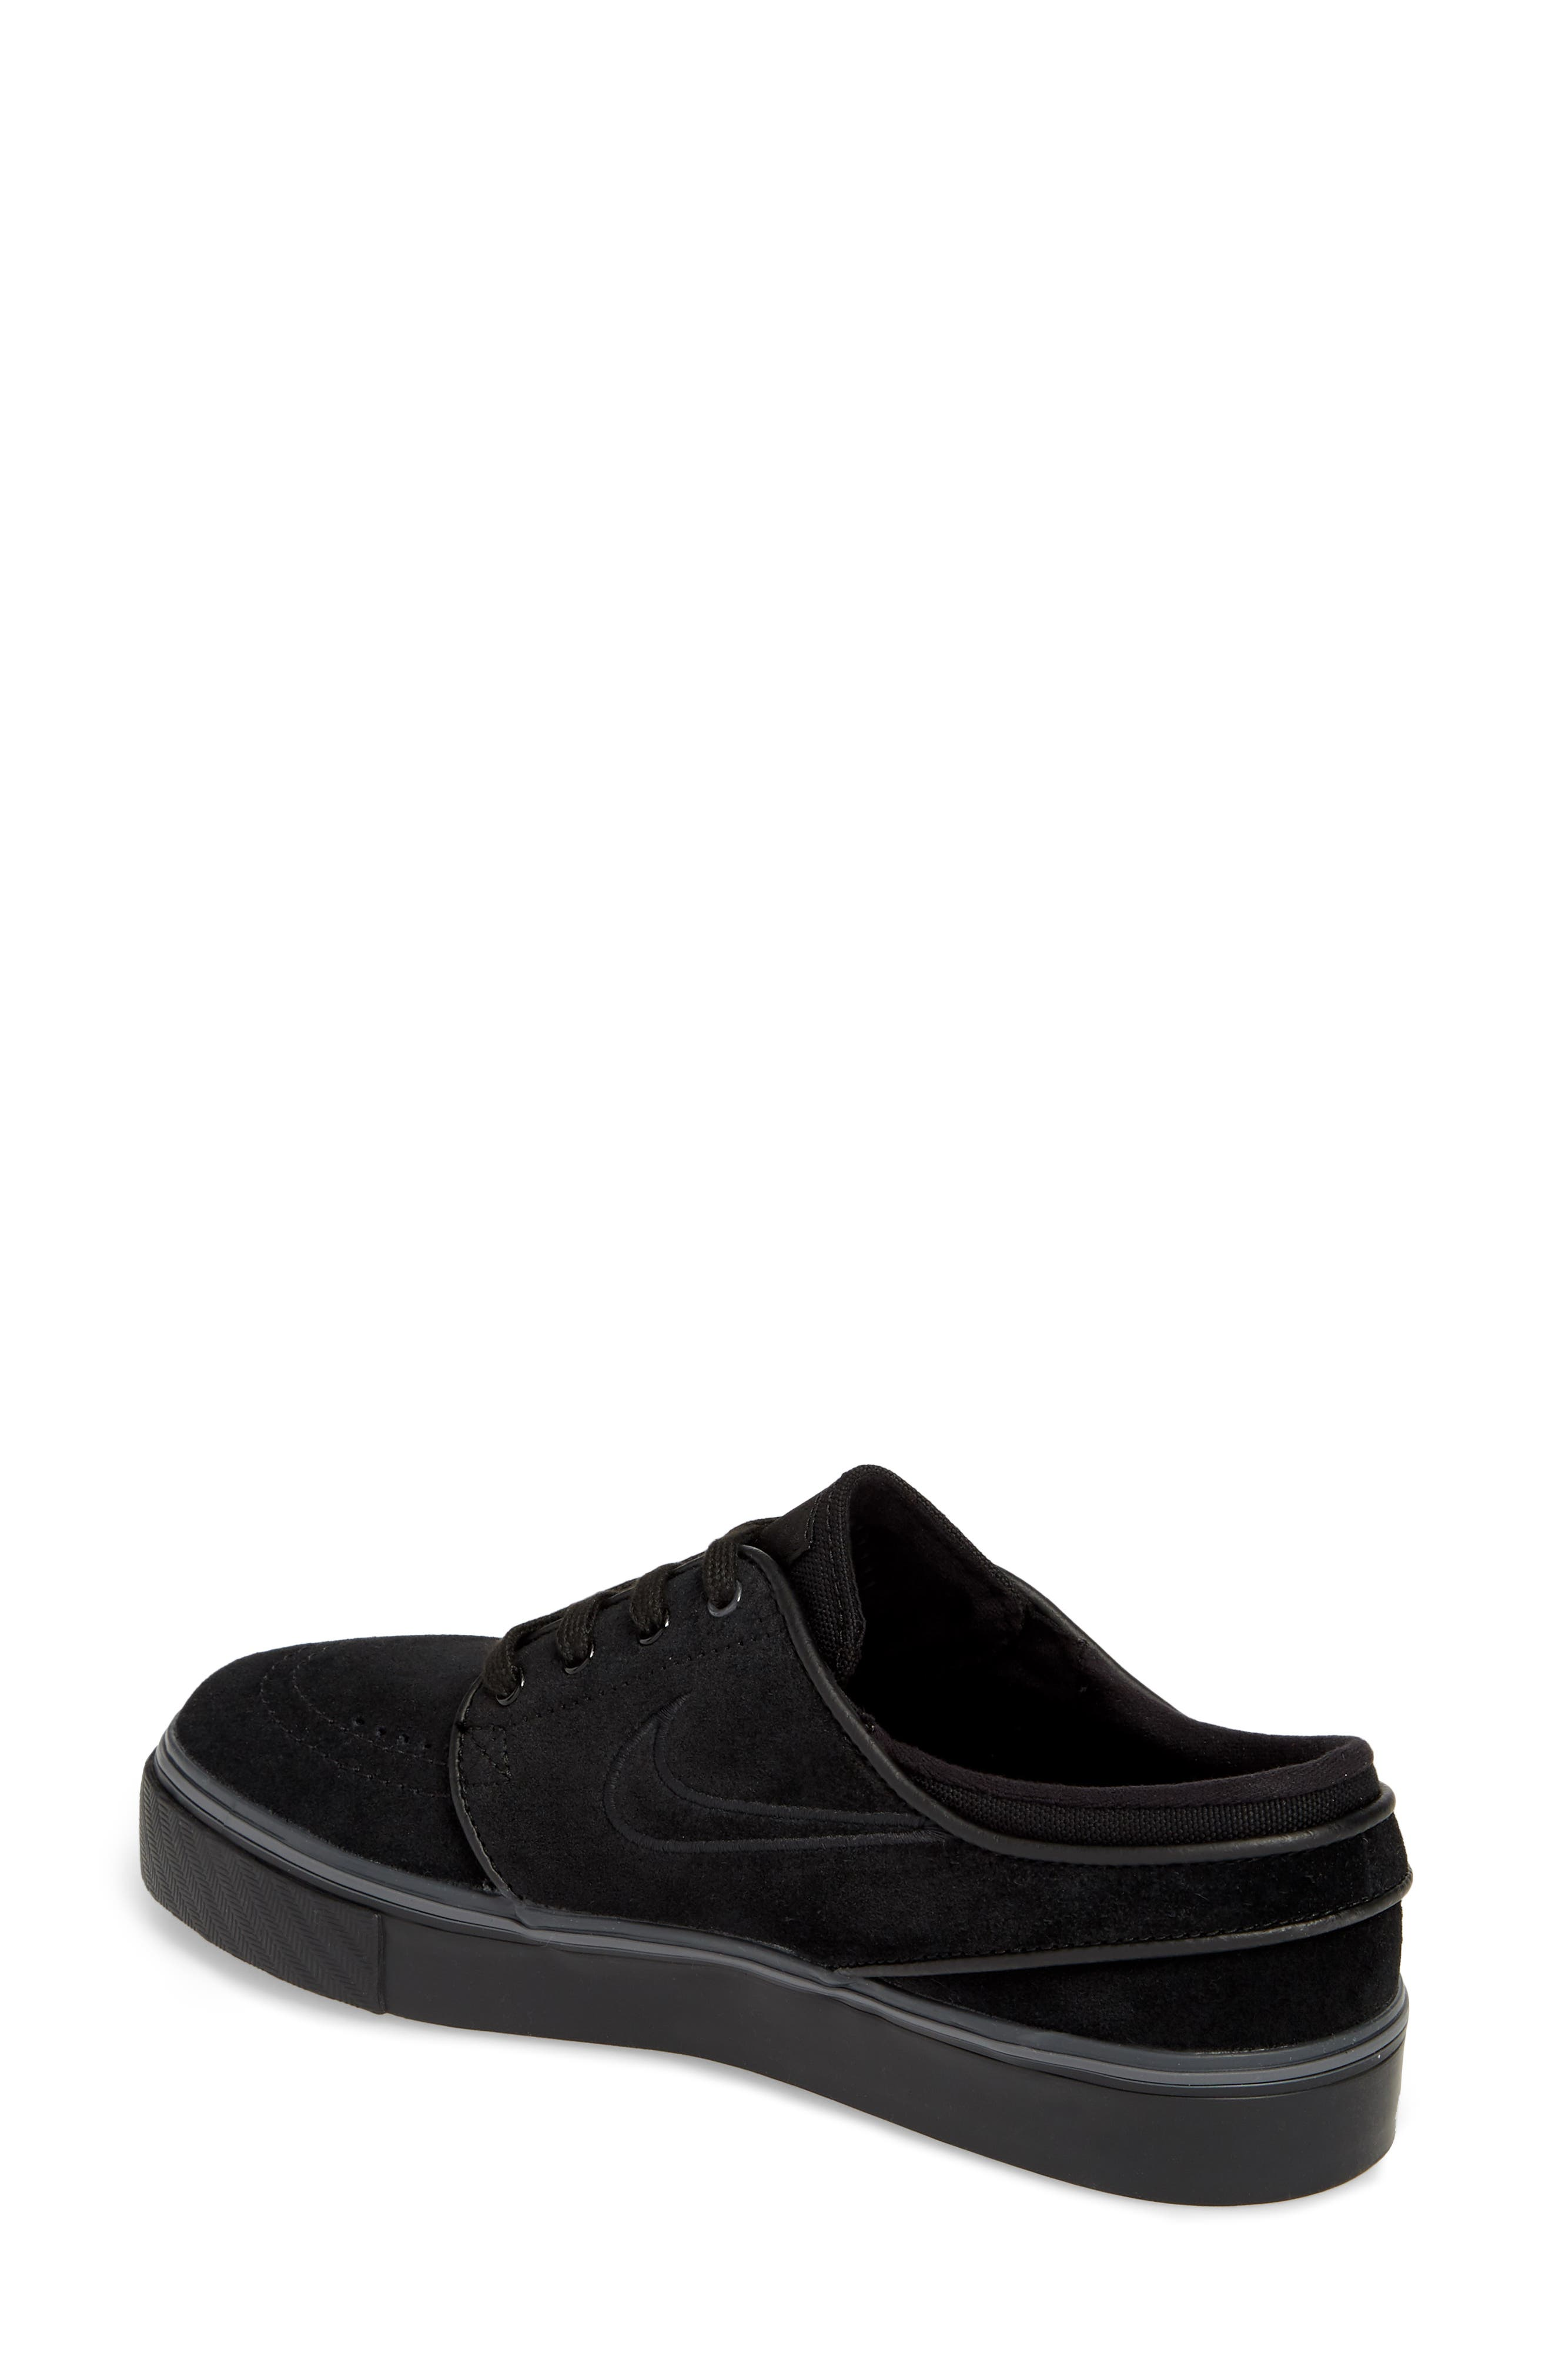 SB Air Zoom Stefan Janoski Skate Sneaker,                             Alternate thumbnail 2, color,                             Black/ Black/ Black